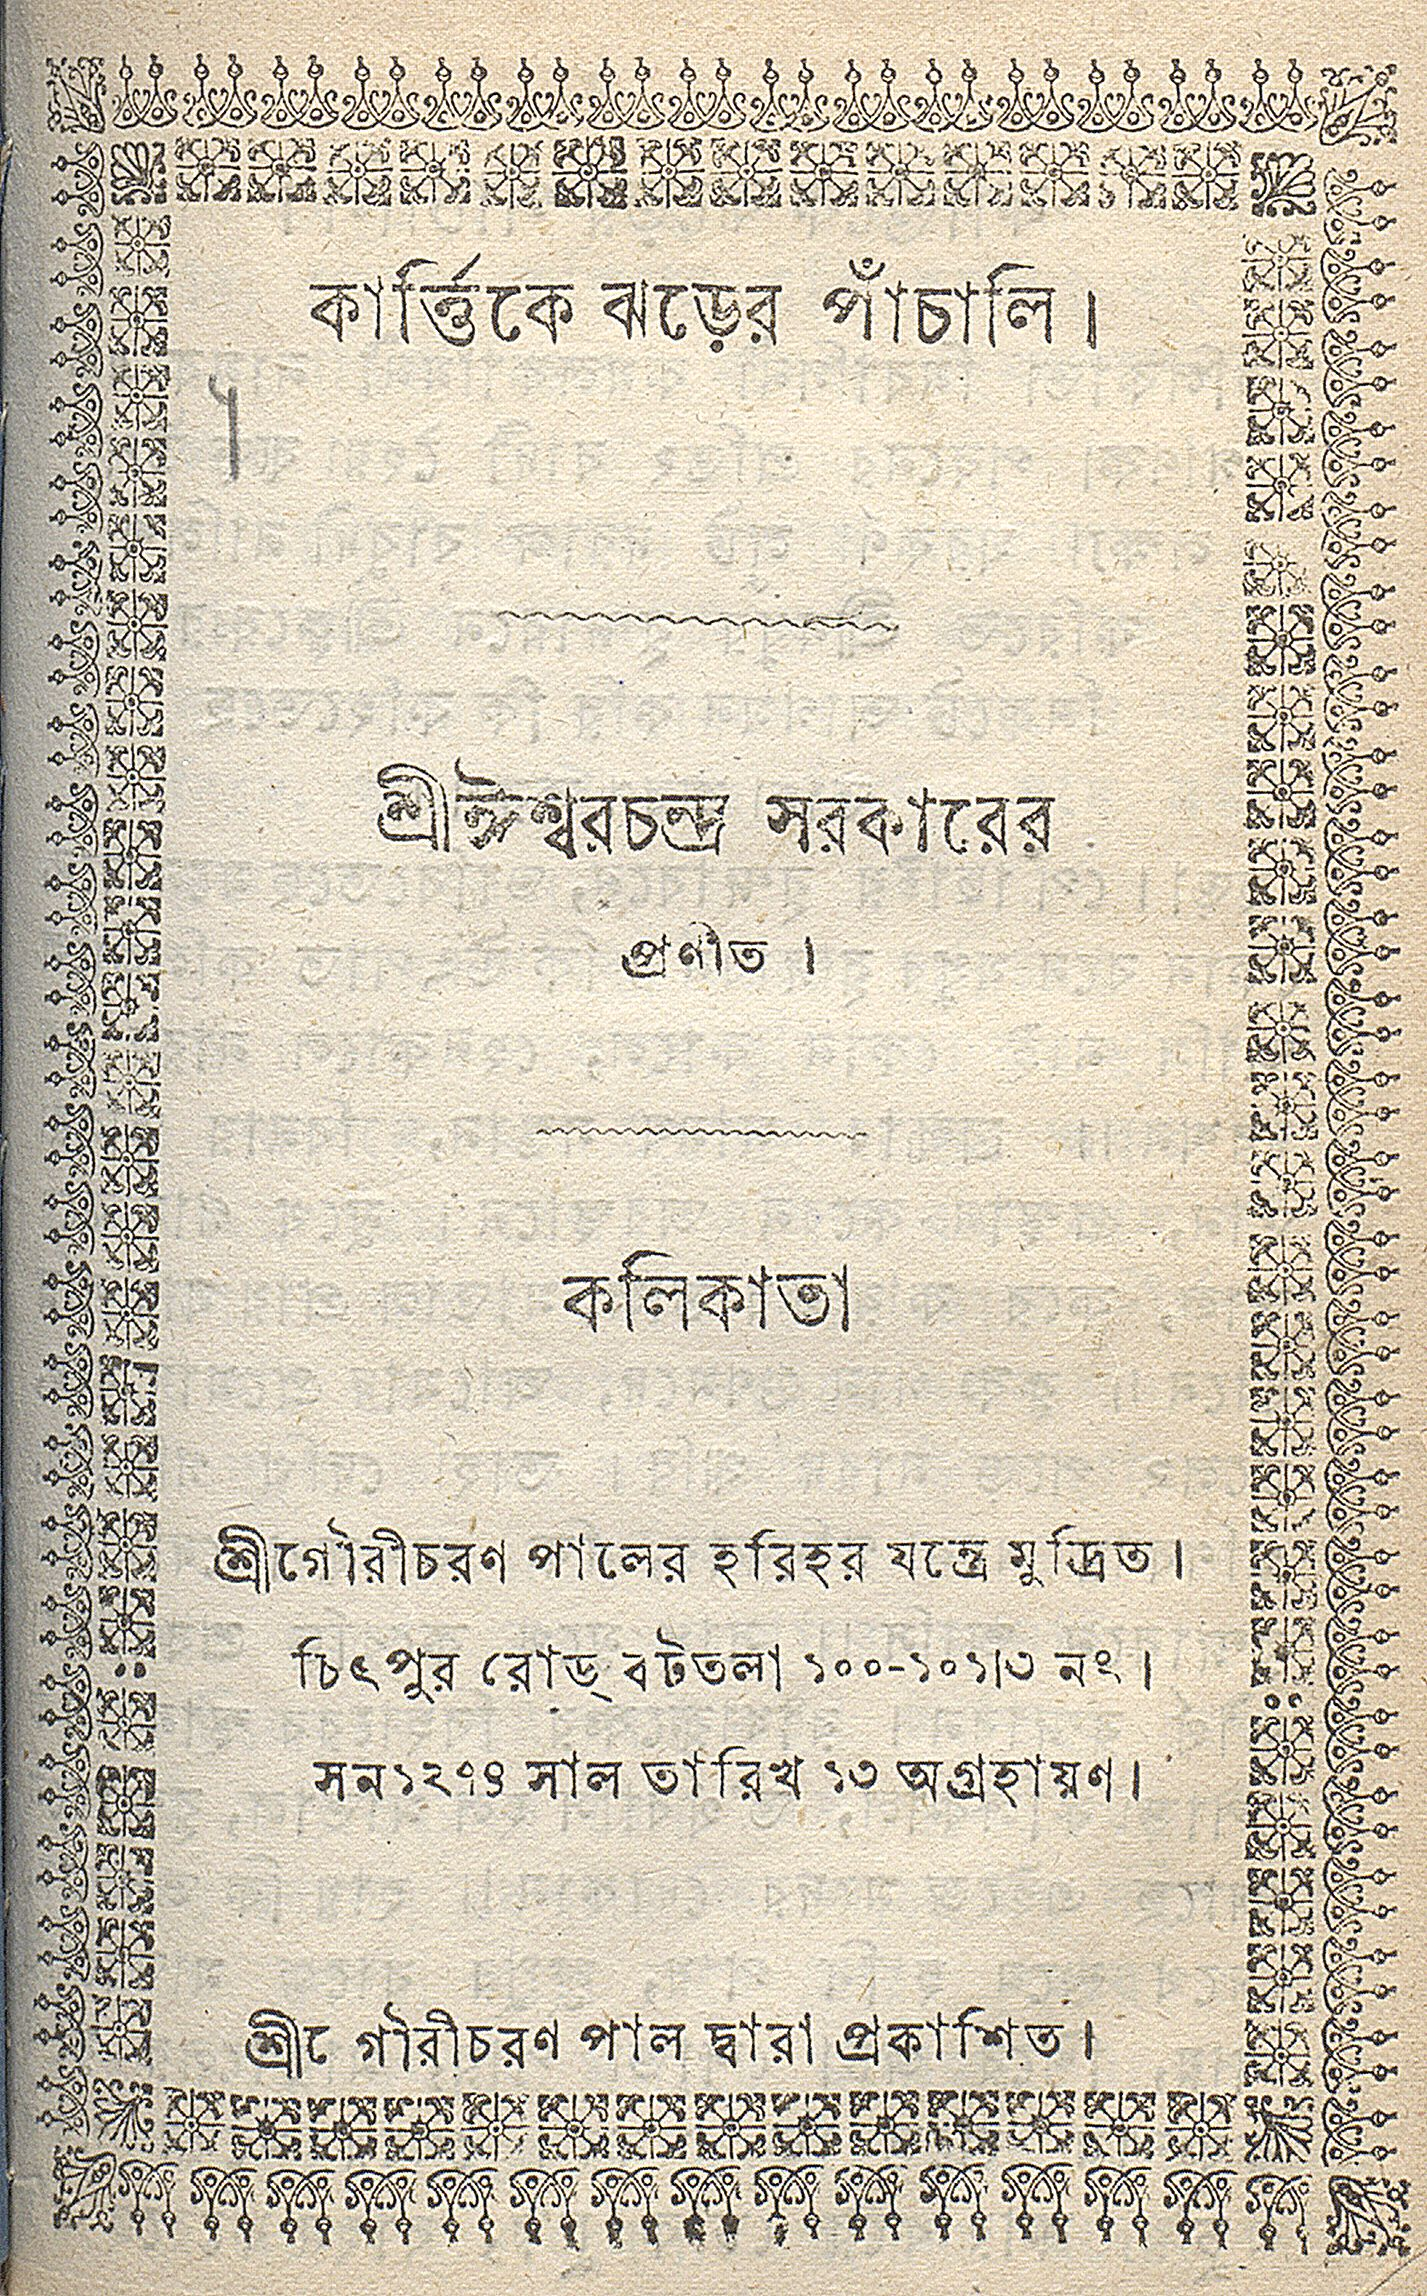 Karttike jhorer pnachali, digitised as part of the British Library's Two Centuries of Indian Print Digitisation project.